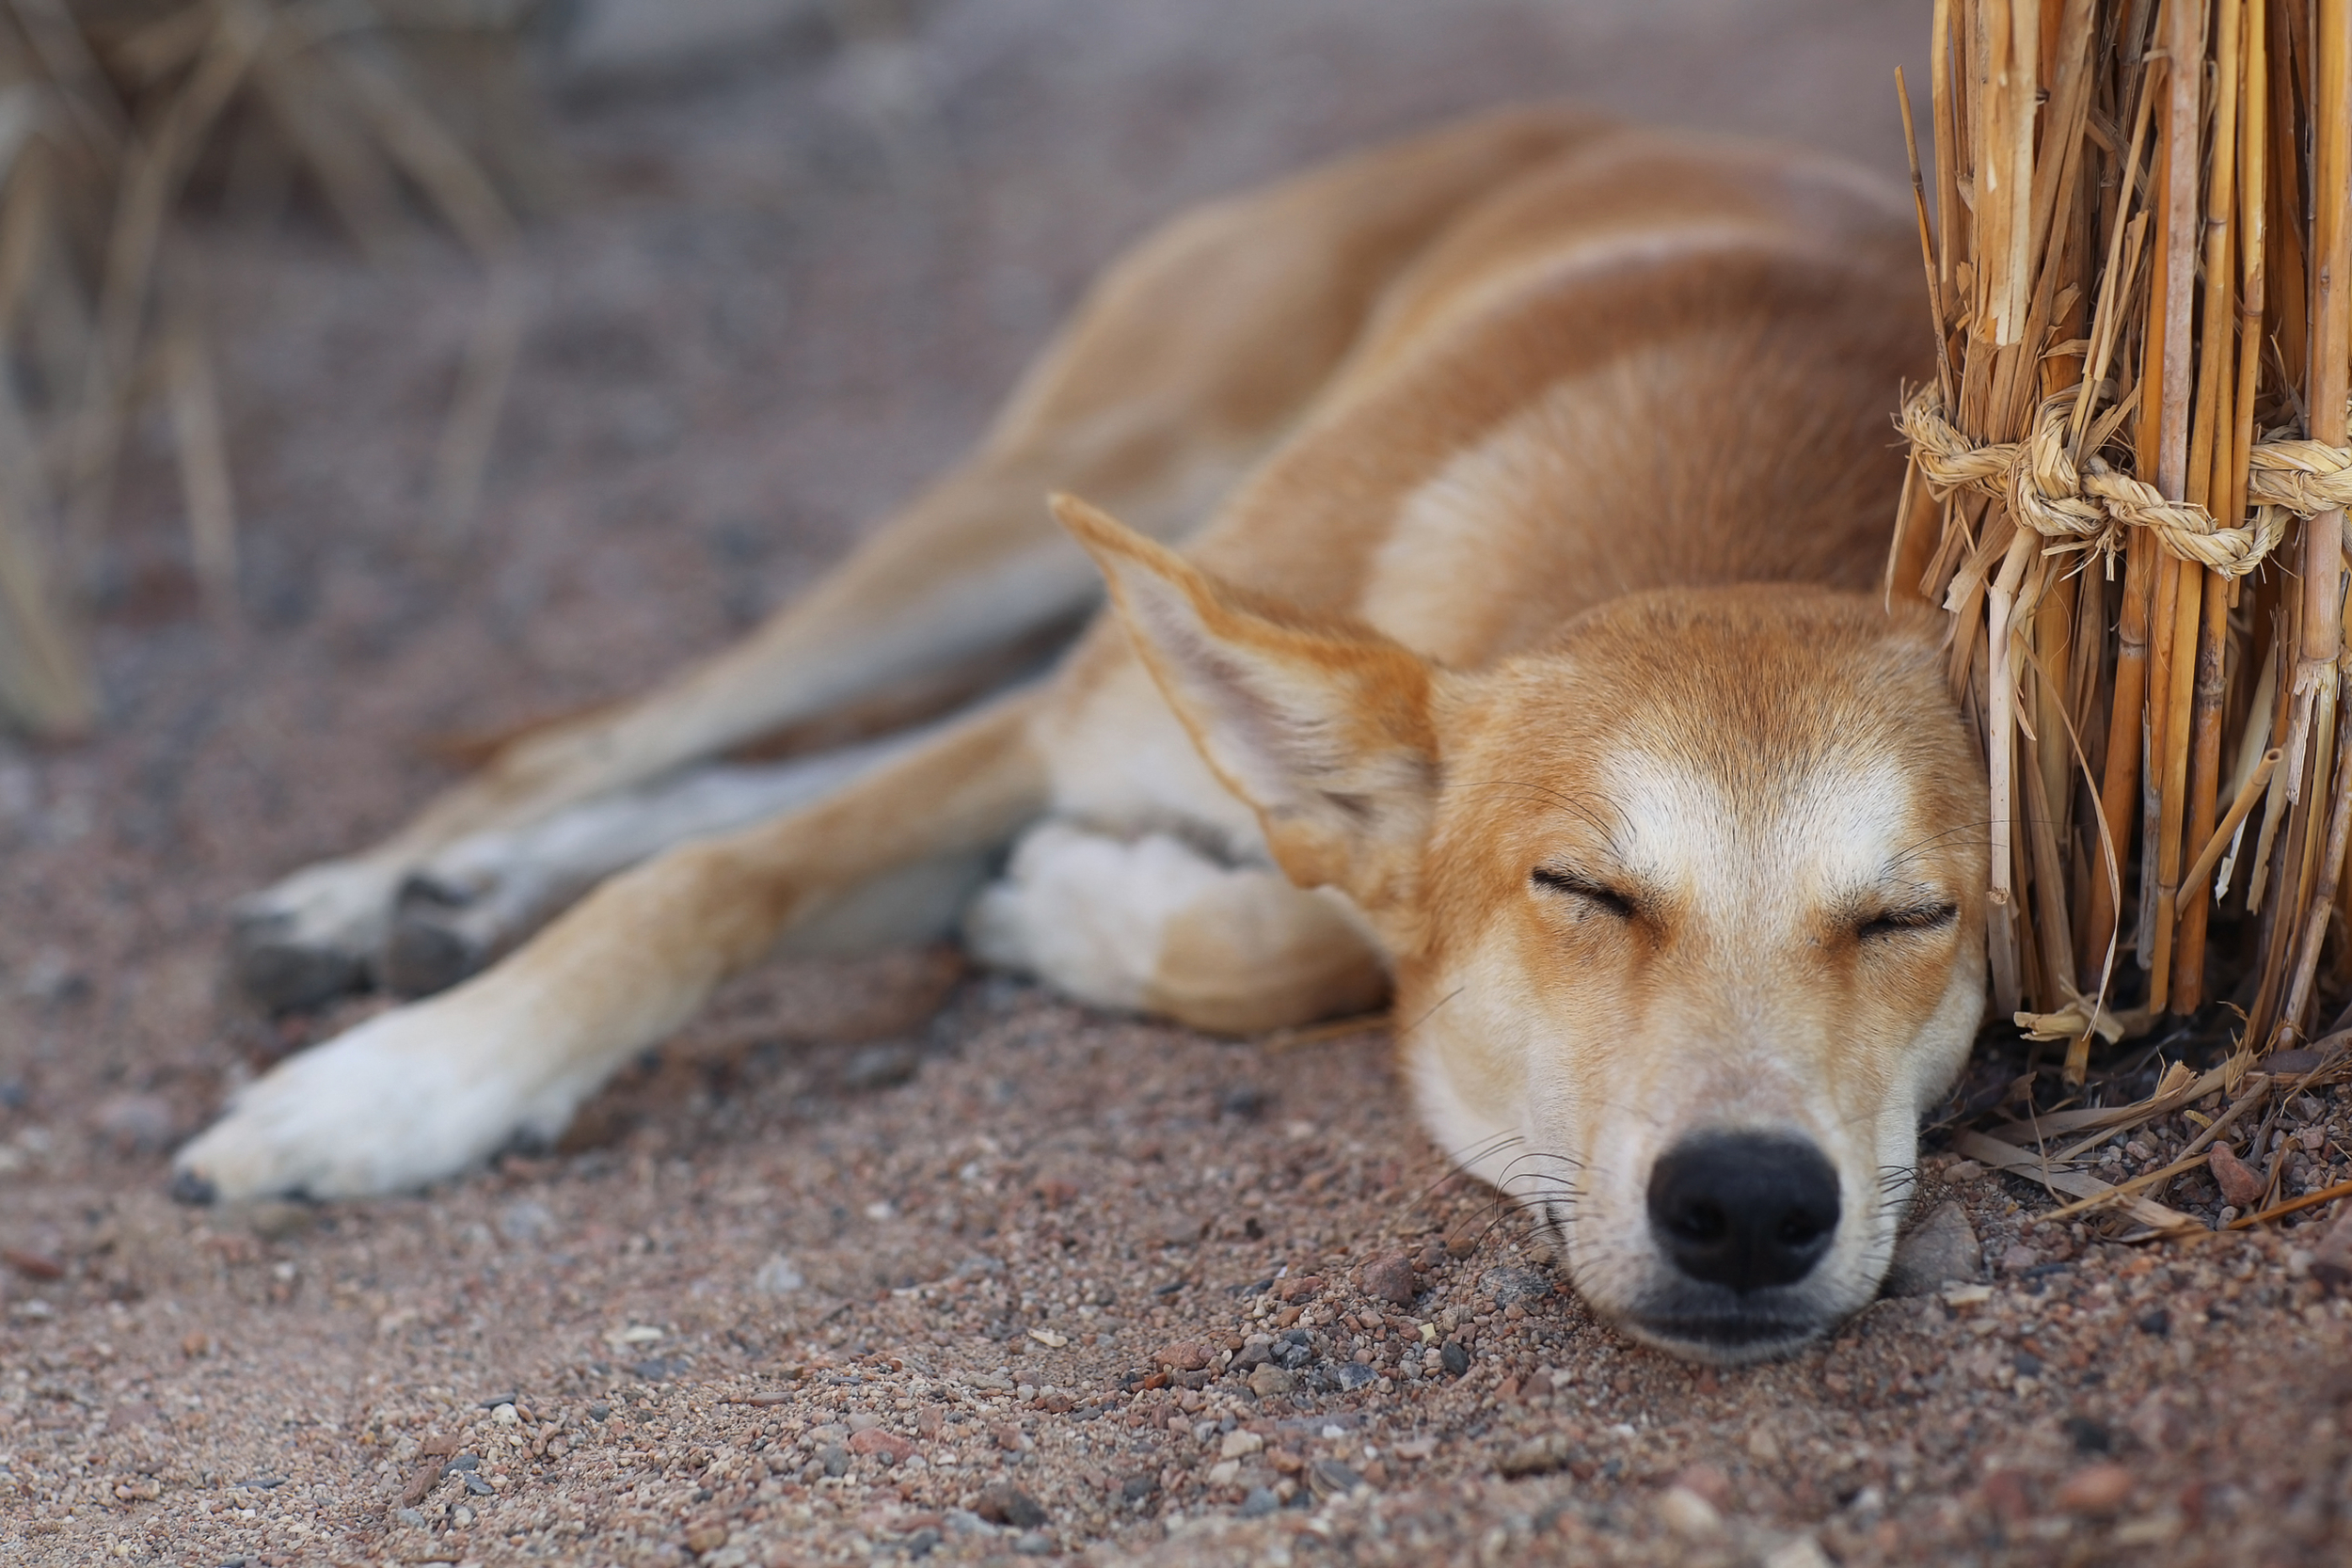 FPM Dingo takes time to ponder, then act   (Image: (c) Sergey Kichigin | Dreamstime.com)